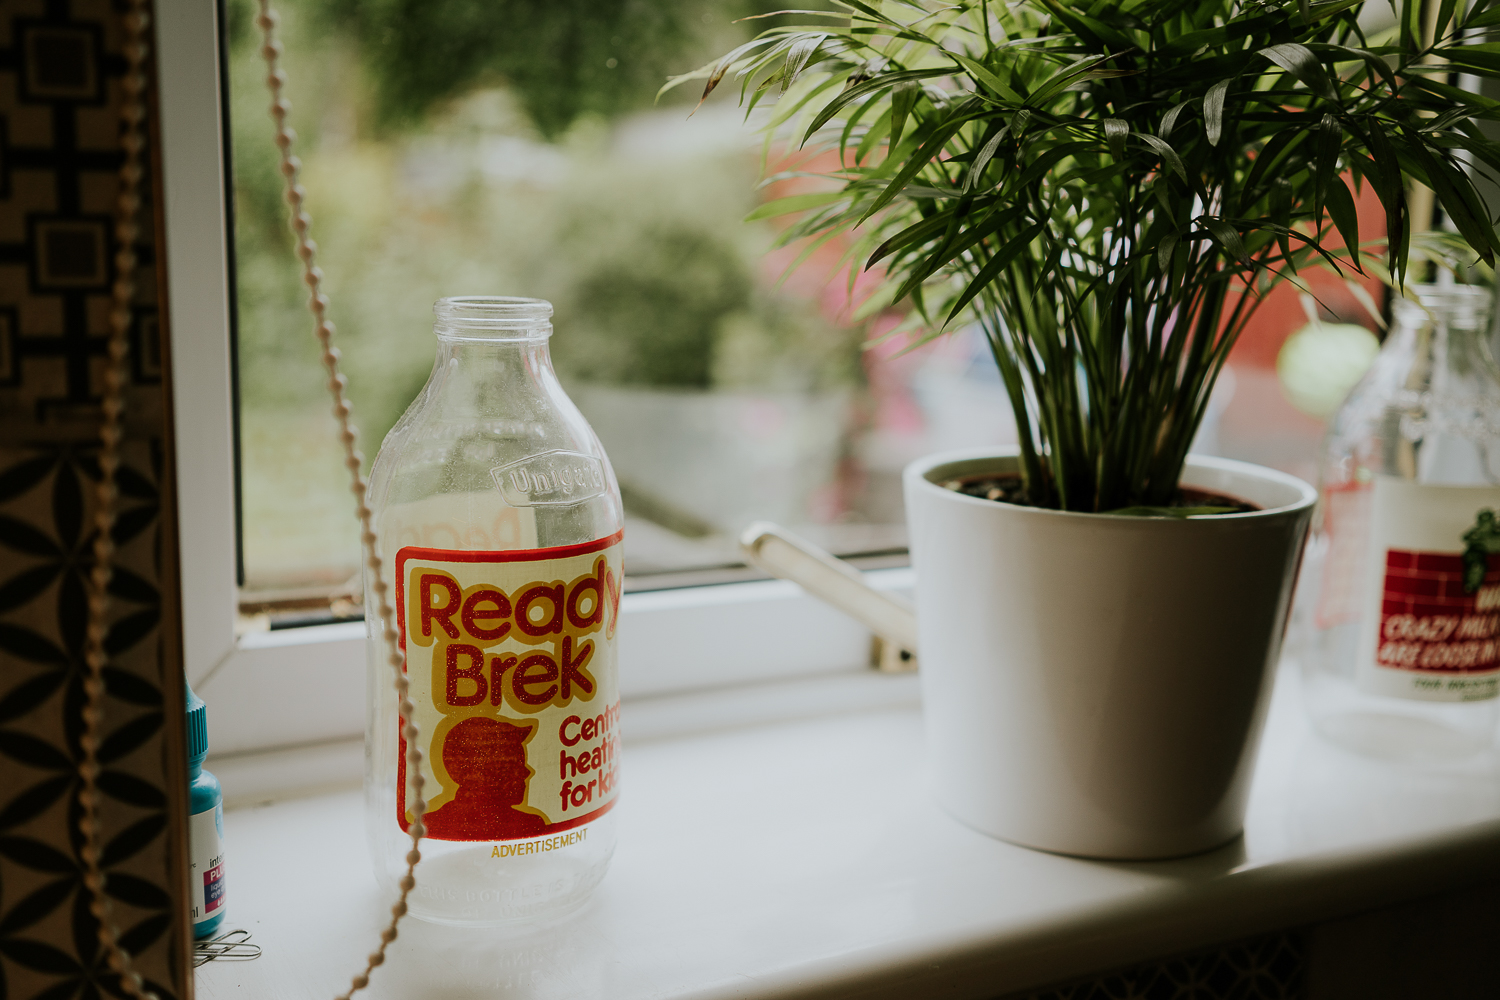 day in the life photo shoot Ready Brek milk bottle kitchen retro decor